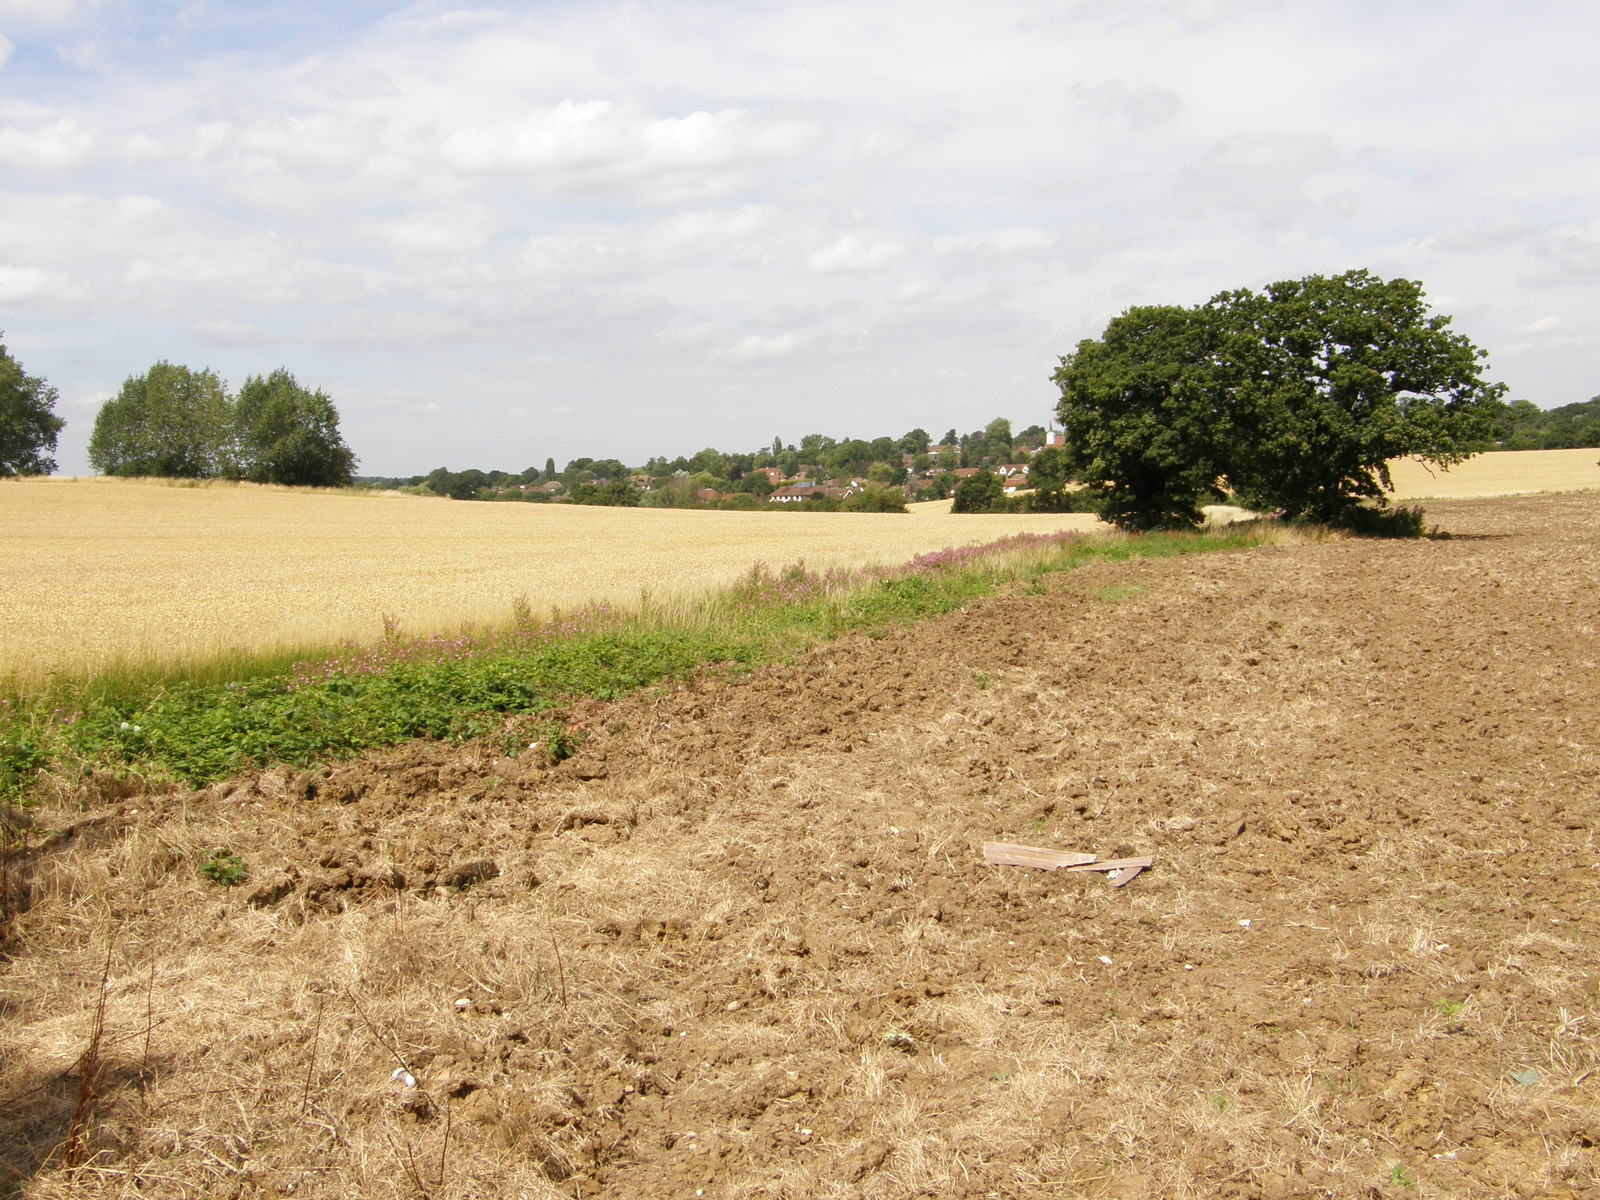 Image from Barkingside to Woodford